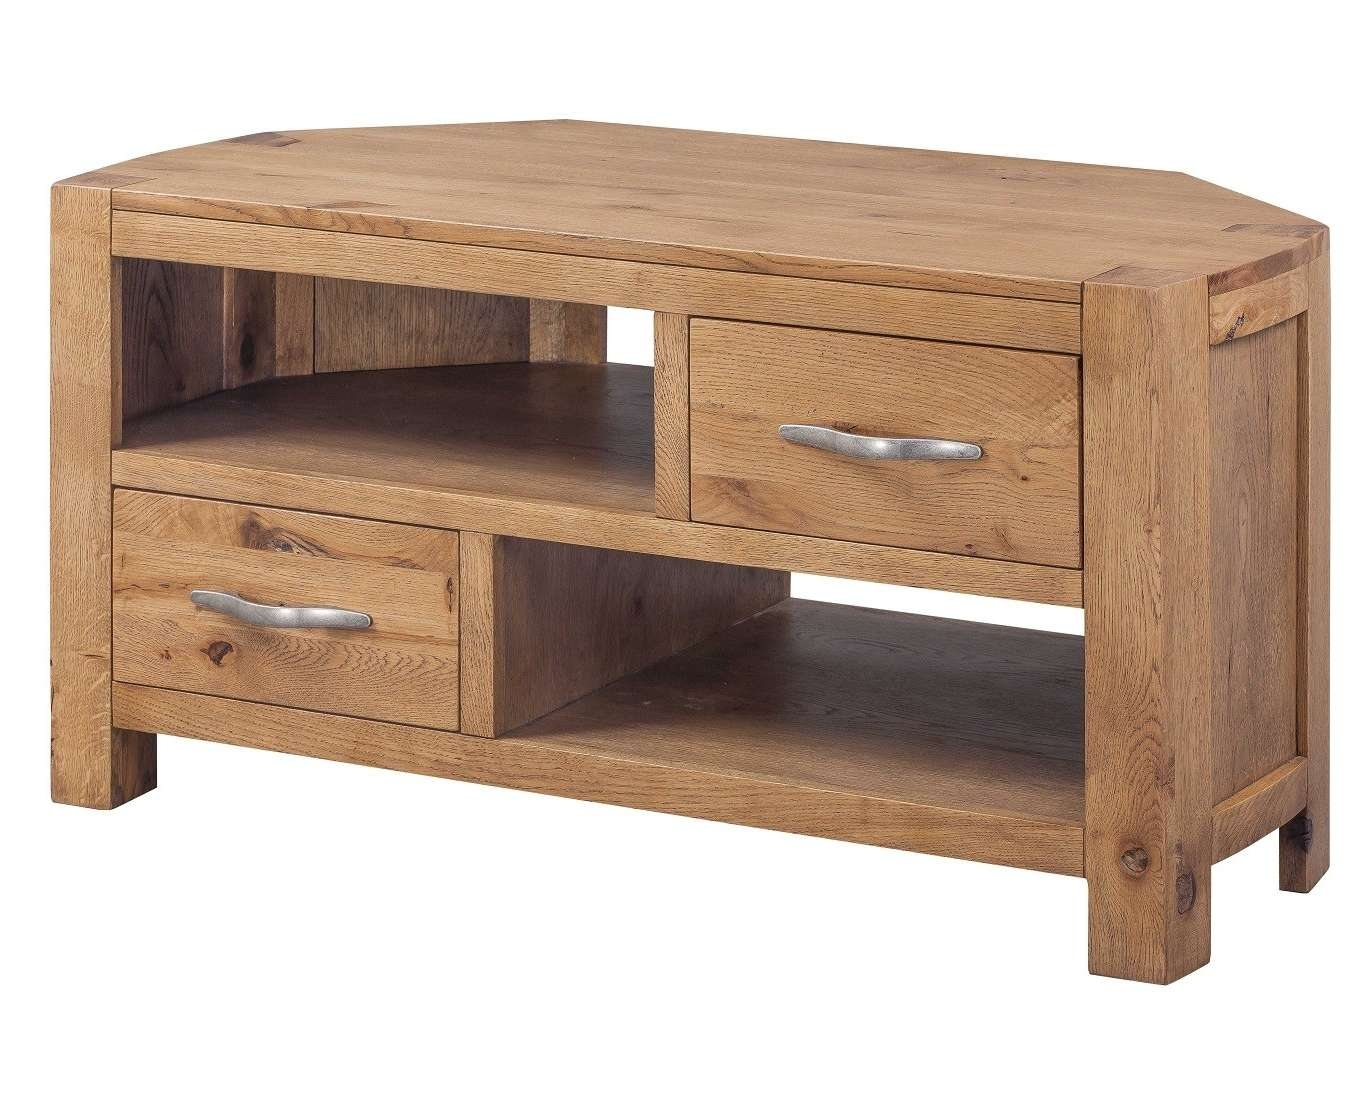 Como Rustic Oak Corner Tv Unit | Oak Furniture Uk Intended For Rustic Corner Tv Cabinets (View 3 of 20)